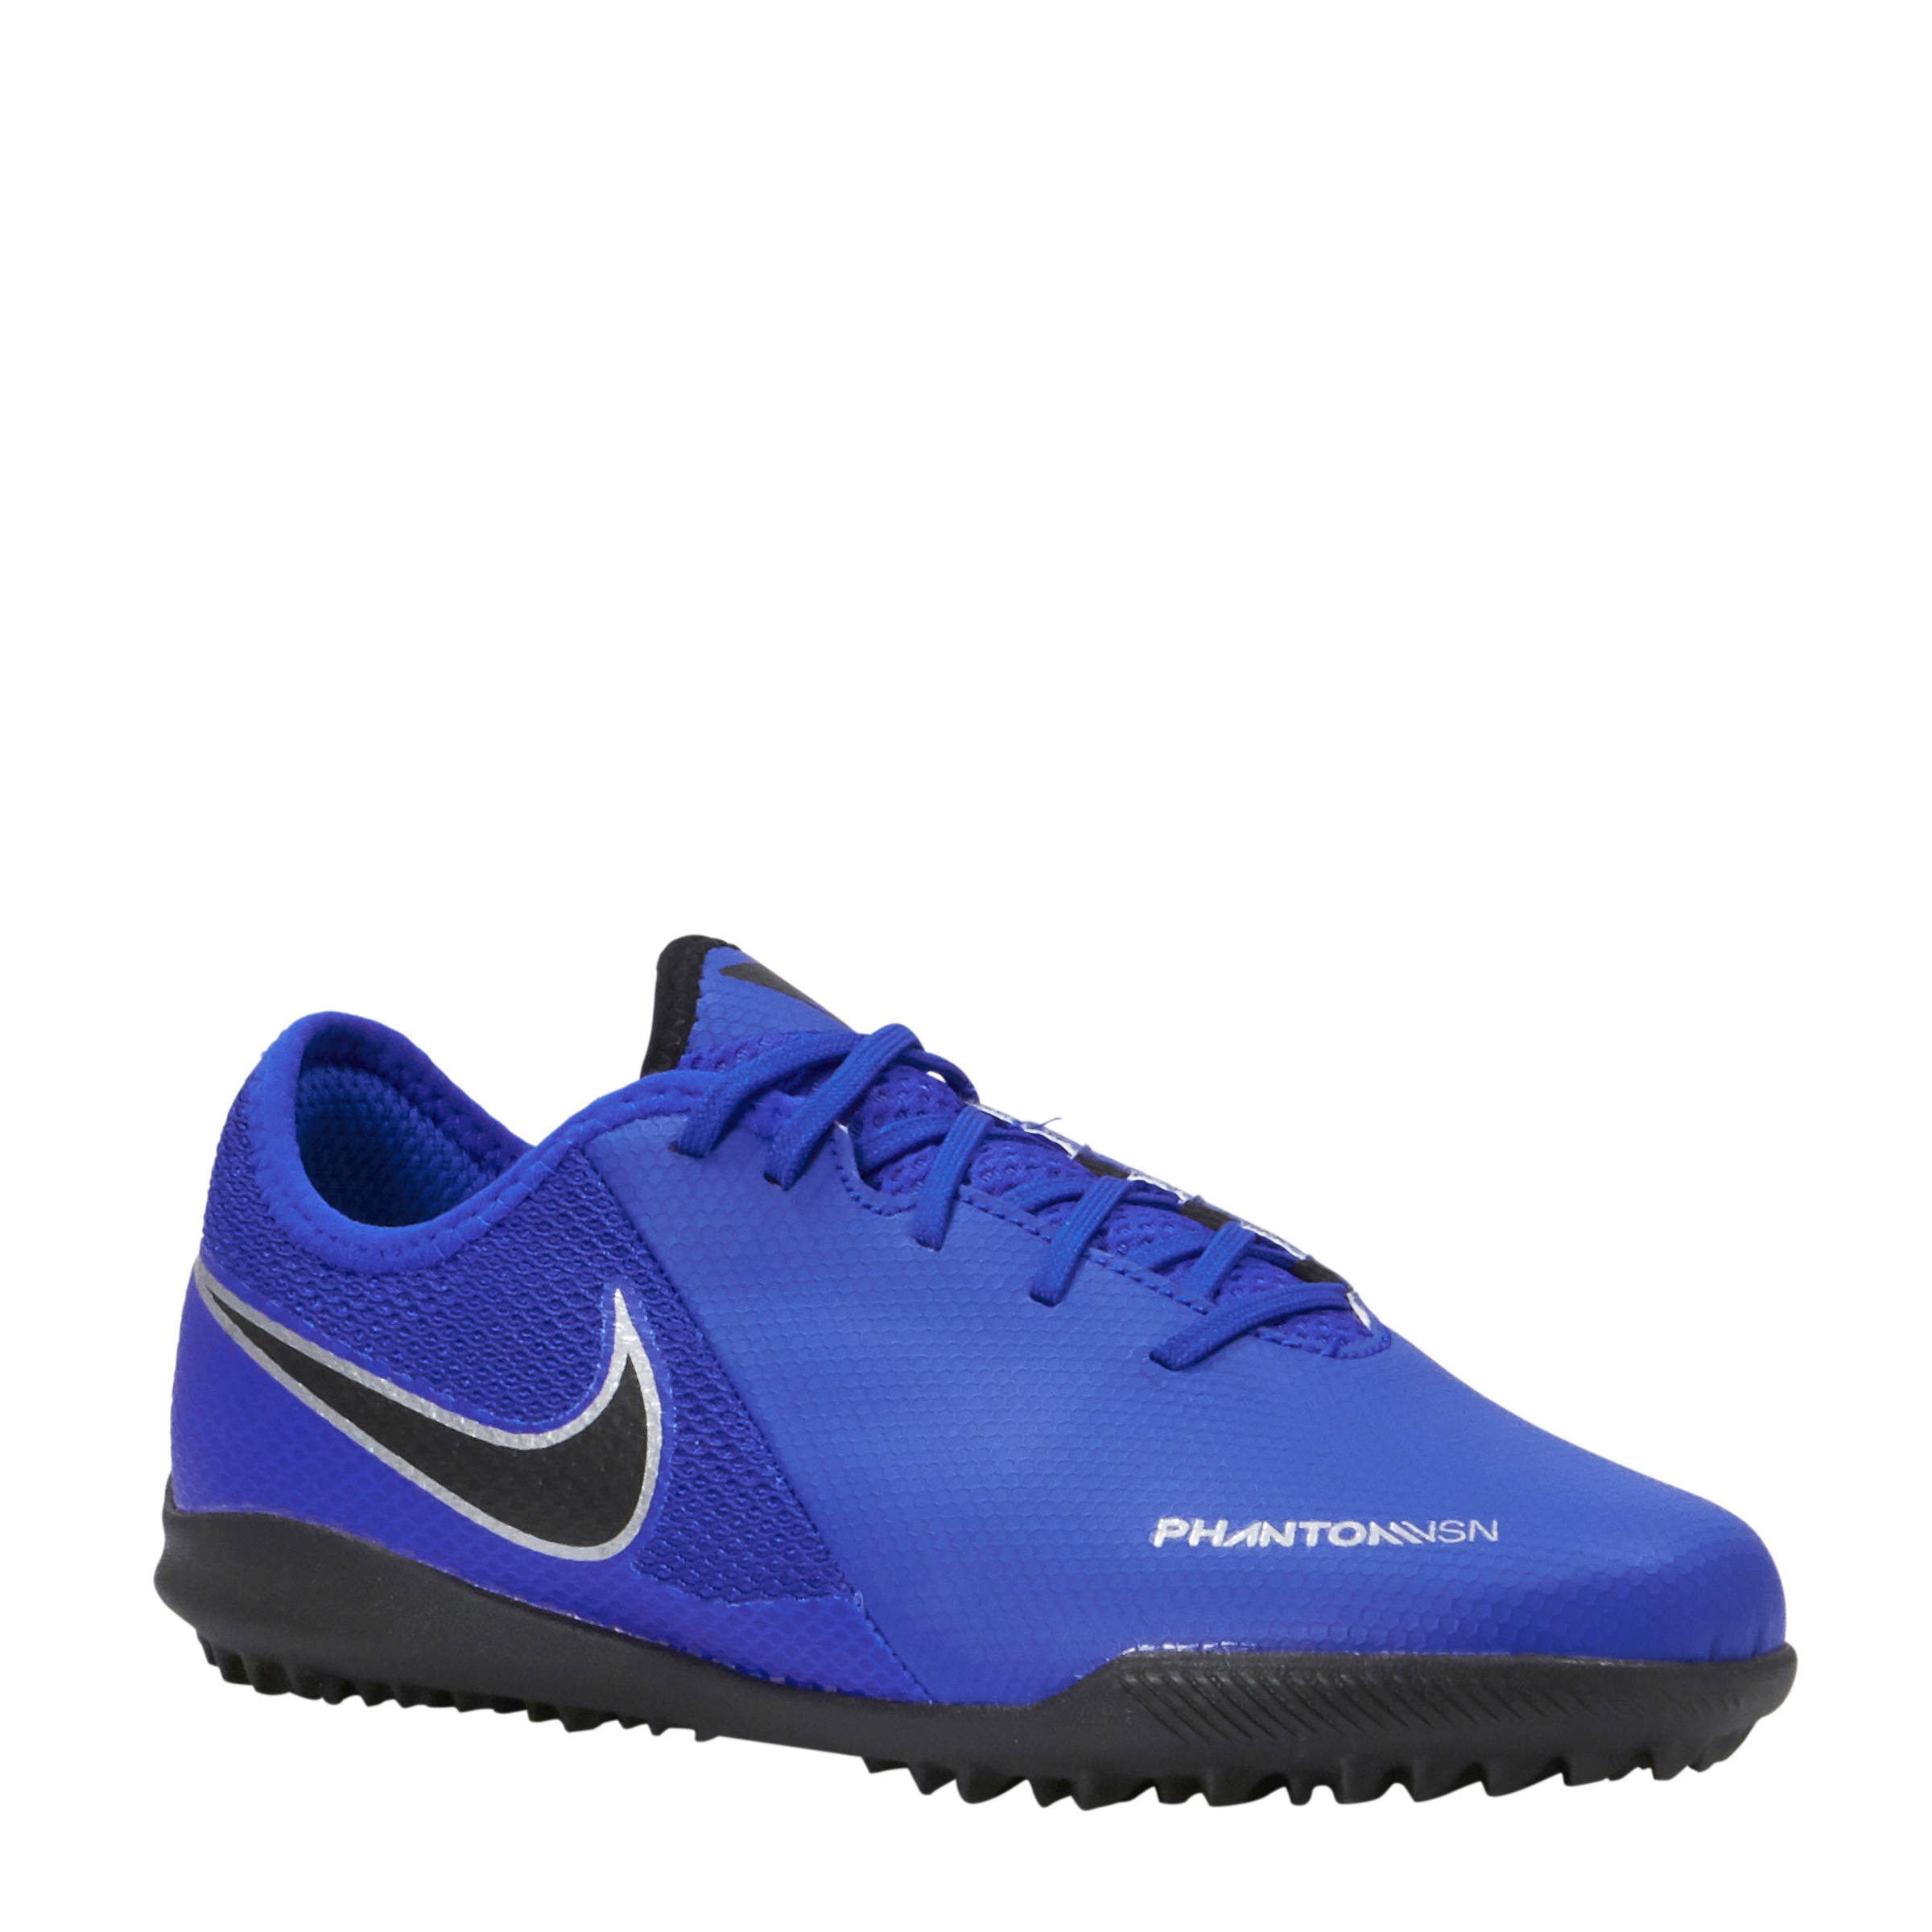 low priced 56e31 16008 nike-jr-phantom-vision-academy-tf-voetbalschoenen-blauw-0191887775461.jpg